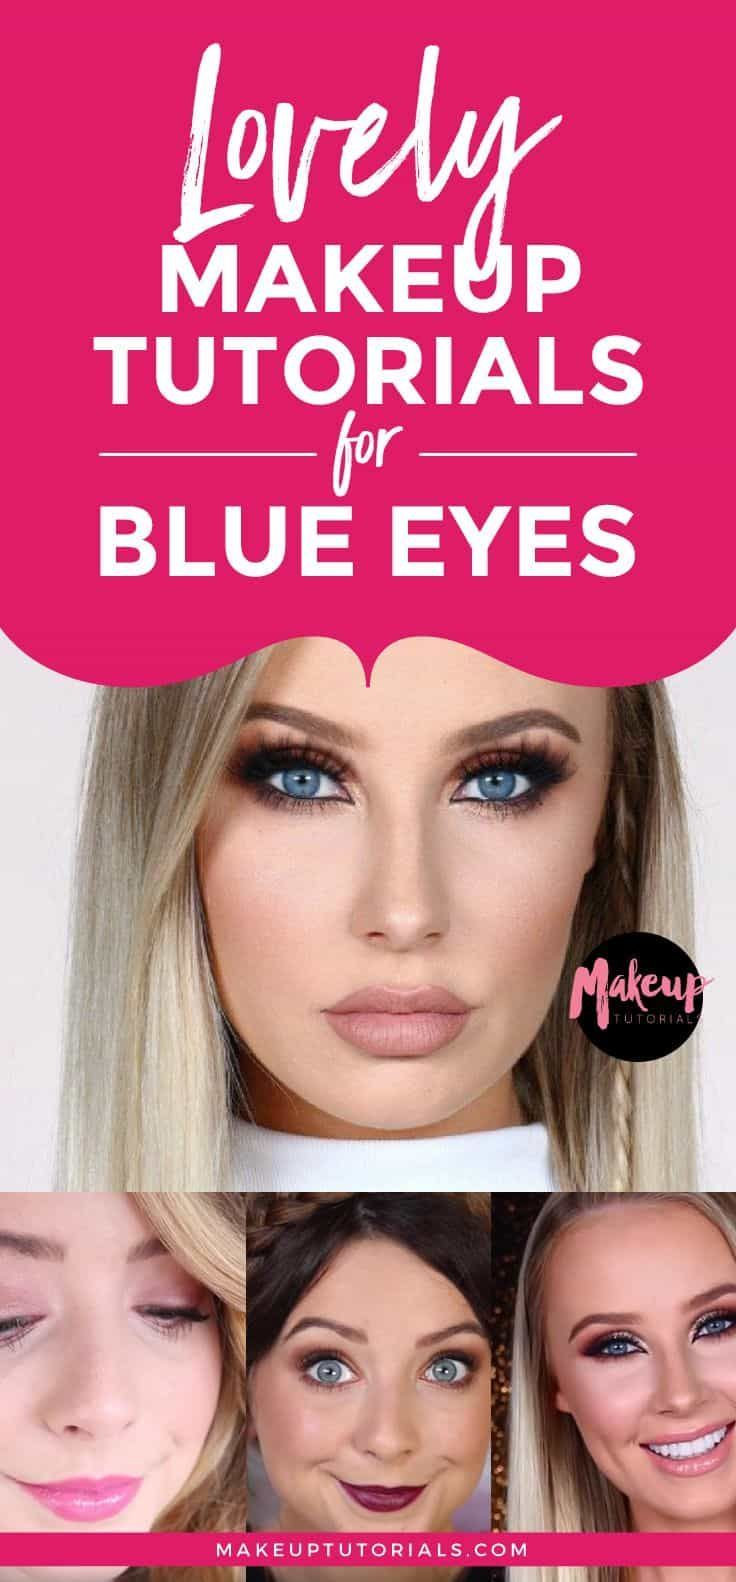 Makeup tutorials for blue eyes lovely makeup tutorials for blue